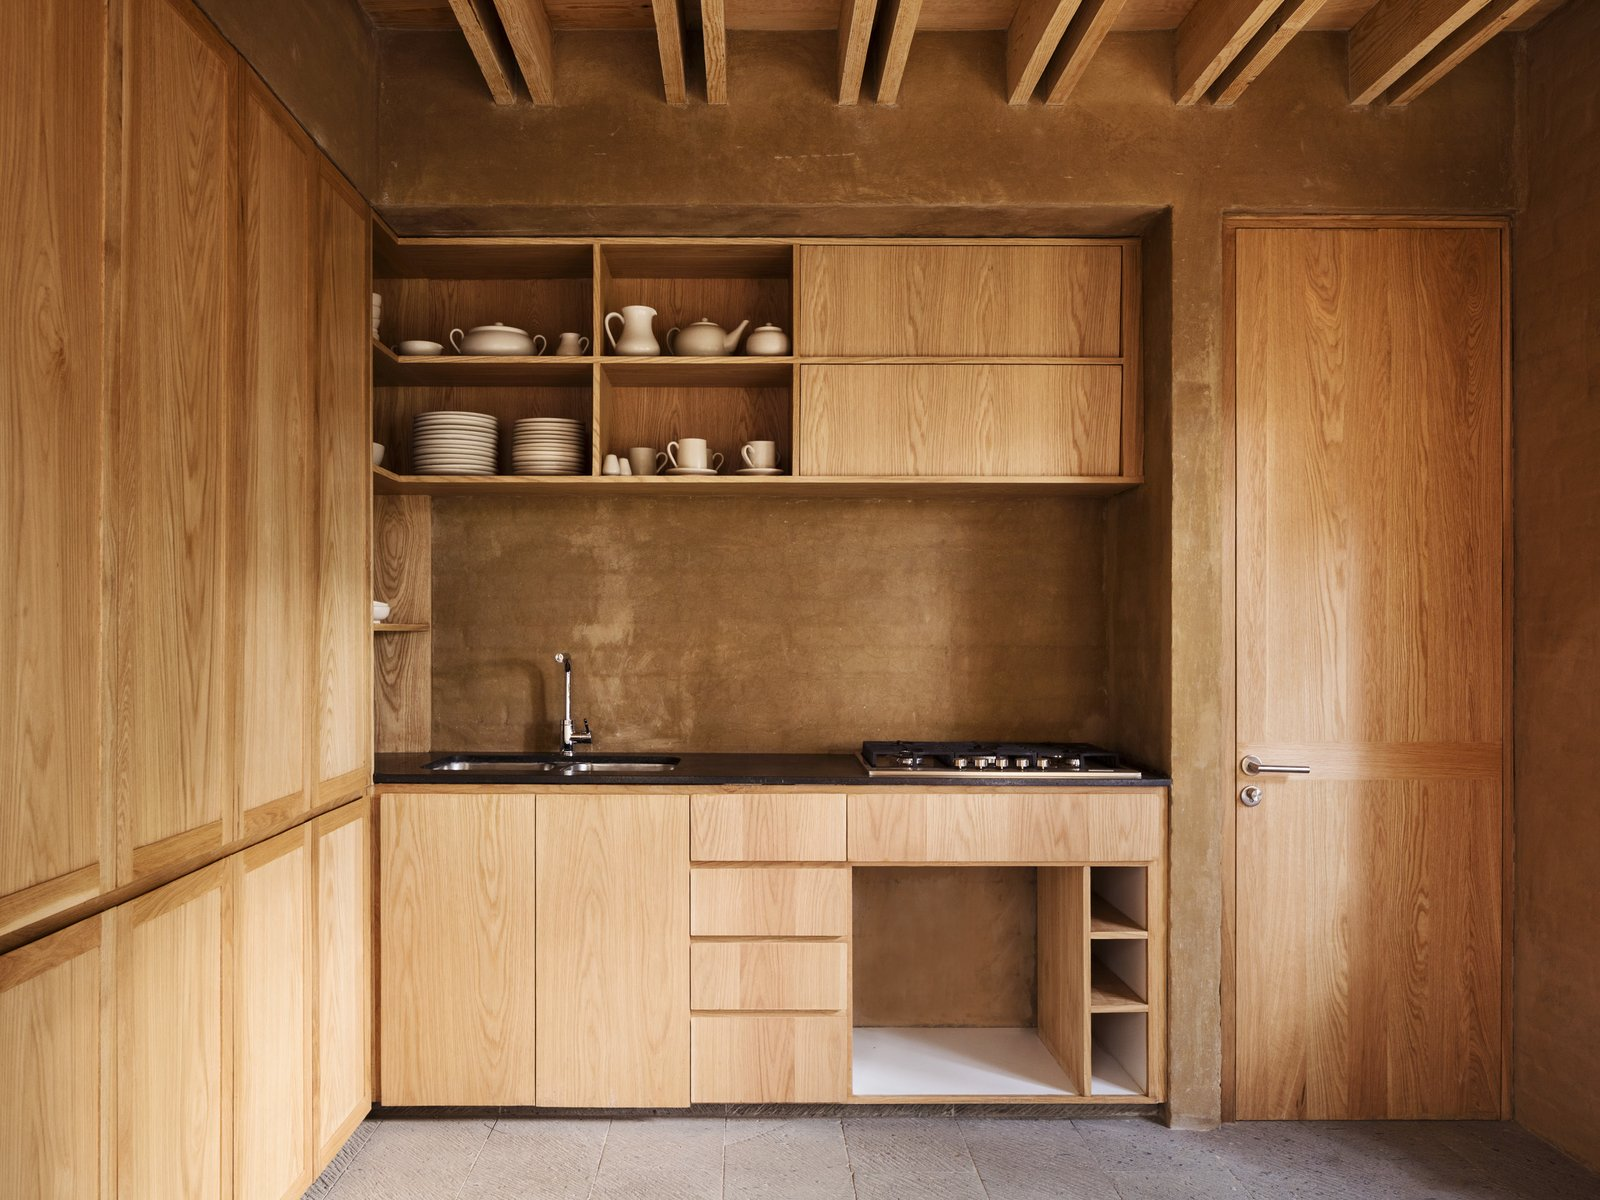 Kitchen, Wood Cabinet, Brick Backsplashe, Range, Undermount Sink, and Open Cabinet A simple wood-finished kitchen.  Photos from Five Cubist Hideaways Peek Out From a Mexican Pine Forest